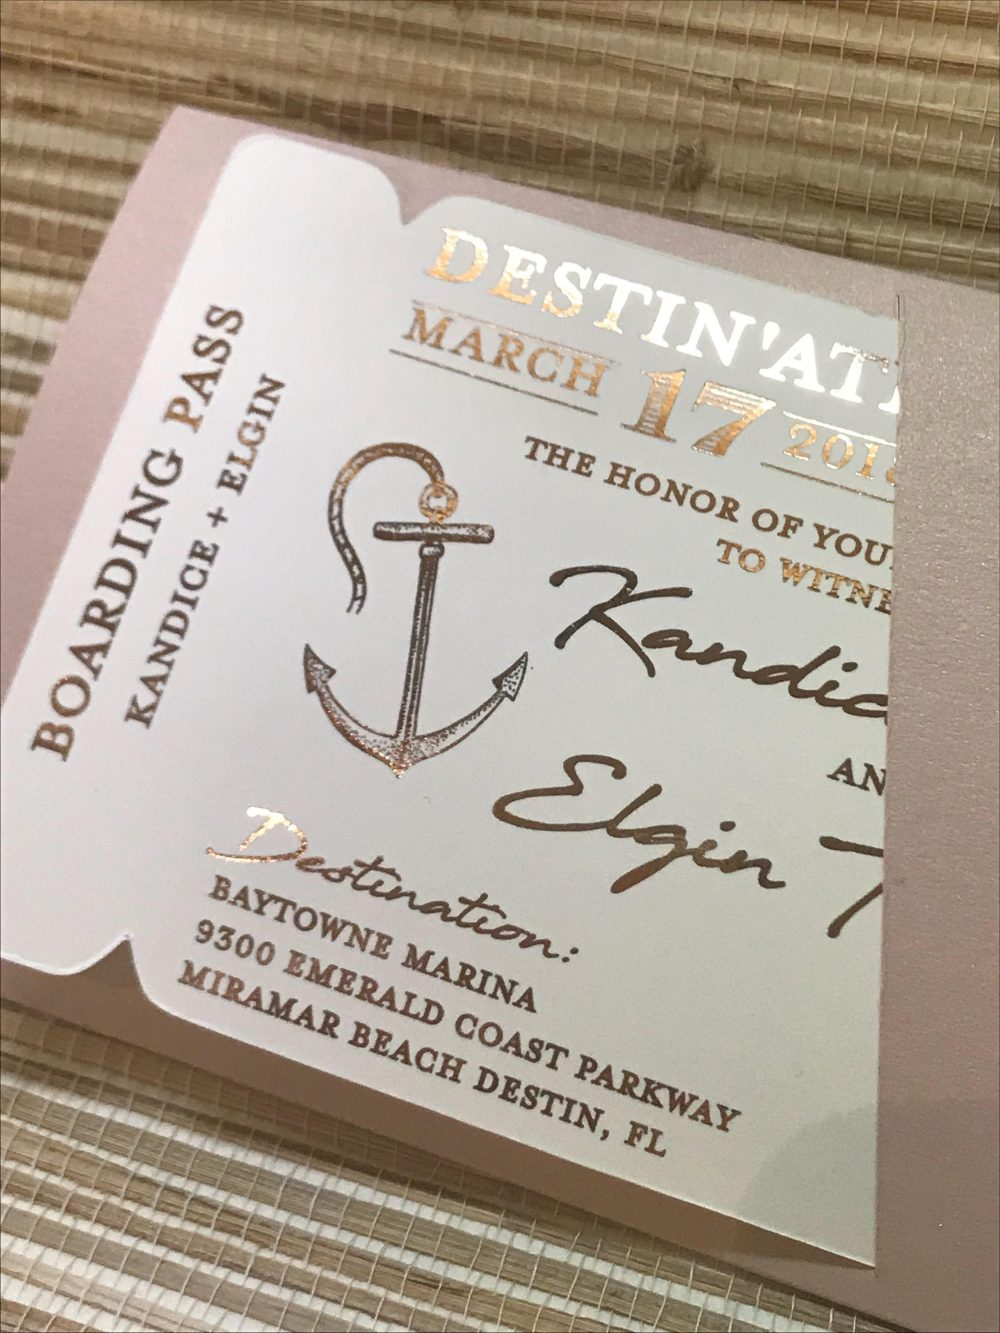 Foil Boarding Pass Invite. Beach Wedding Invitation. Destination Wedding Save The Date. Tropical Invitation. Save Date Cards